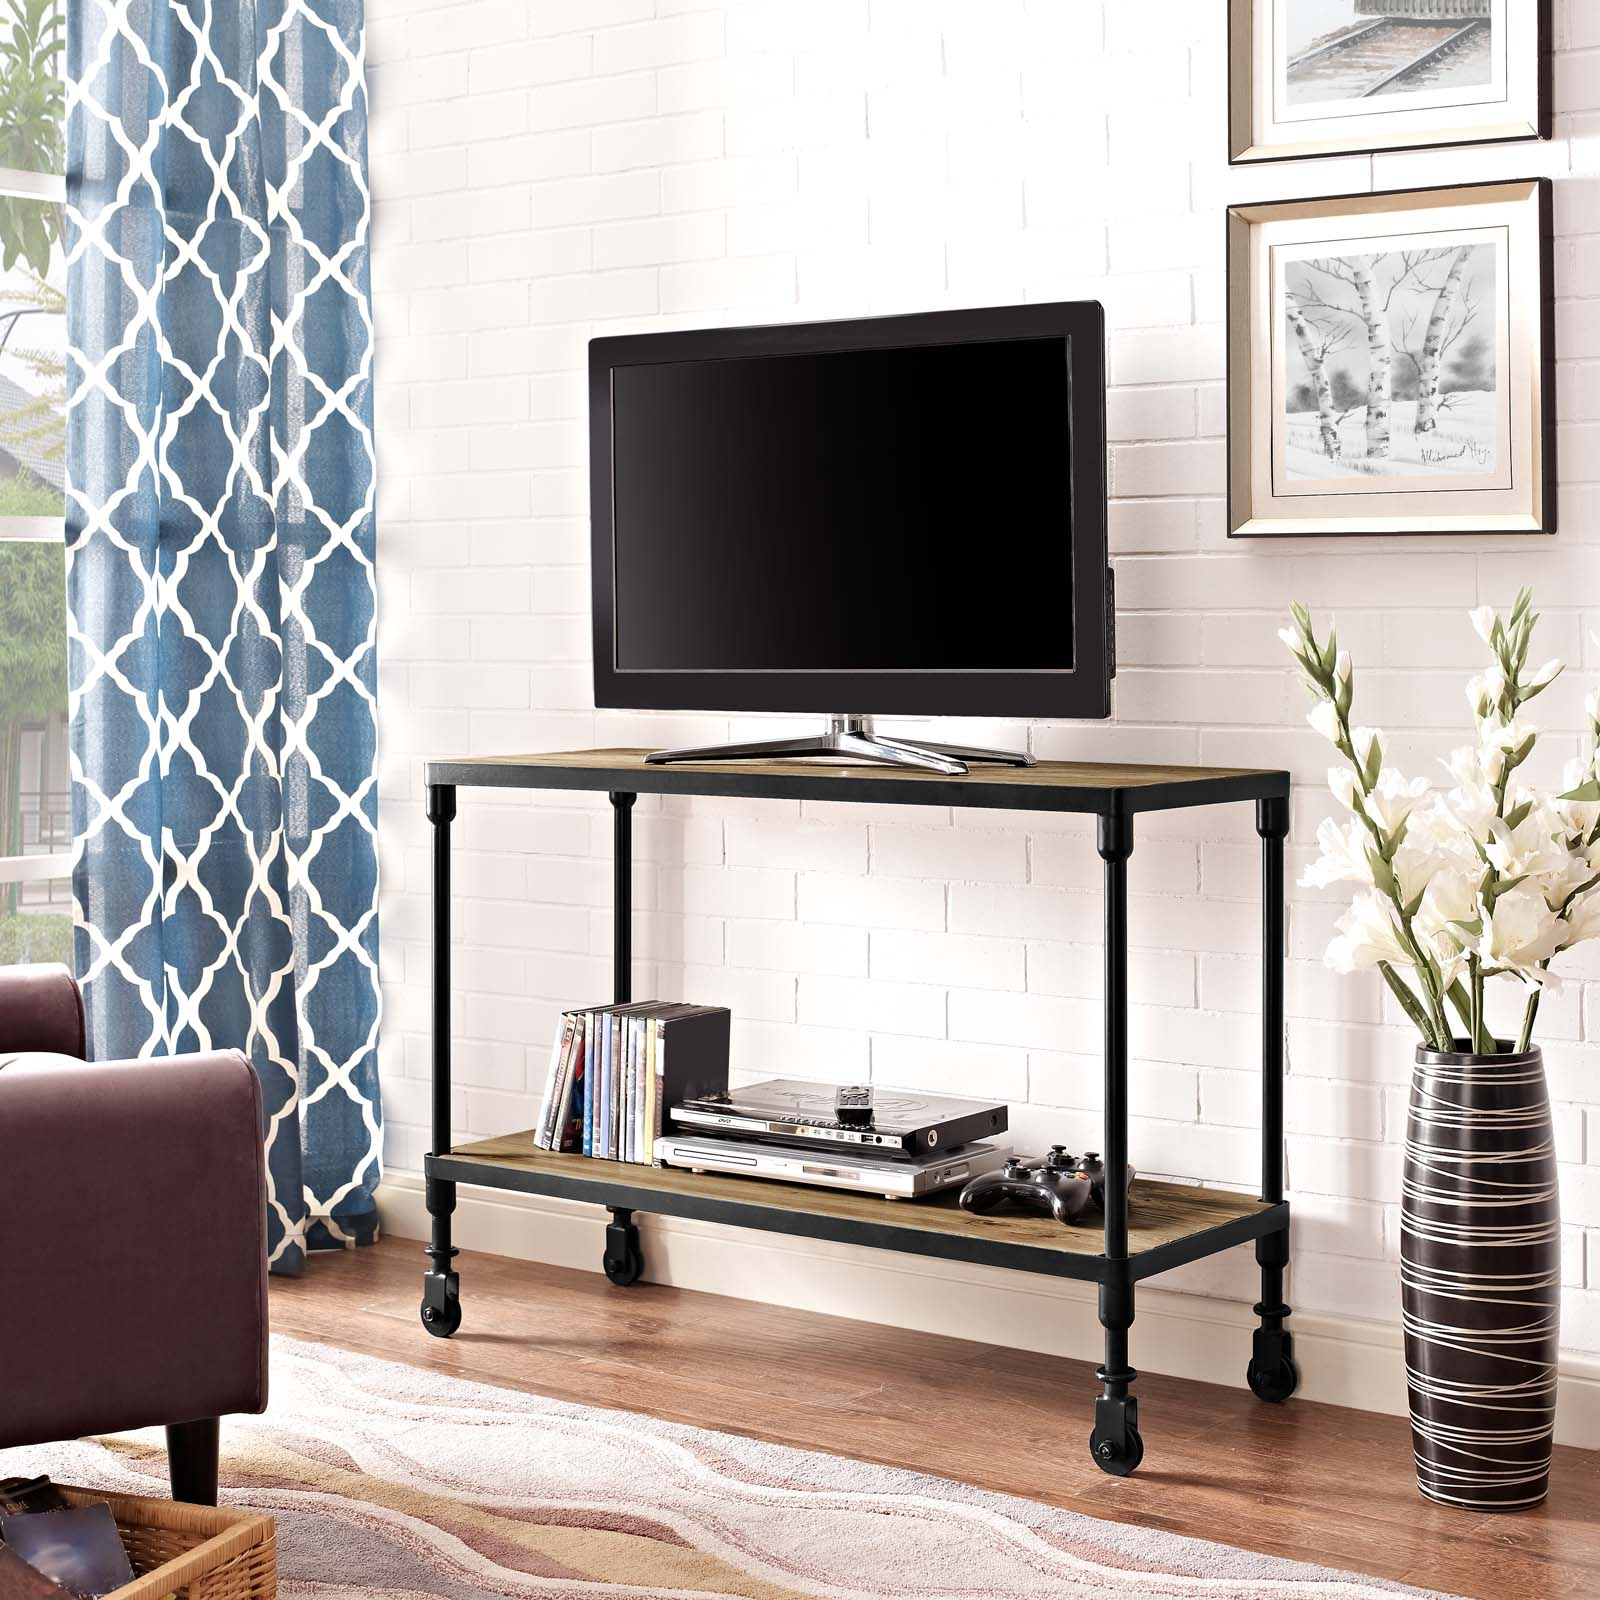 Modway Raise Modern Rustic Pine Wood TV Stand in Brown